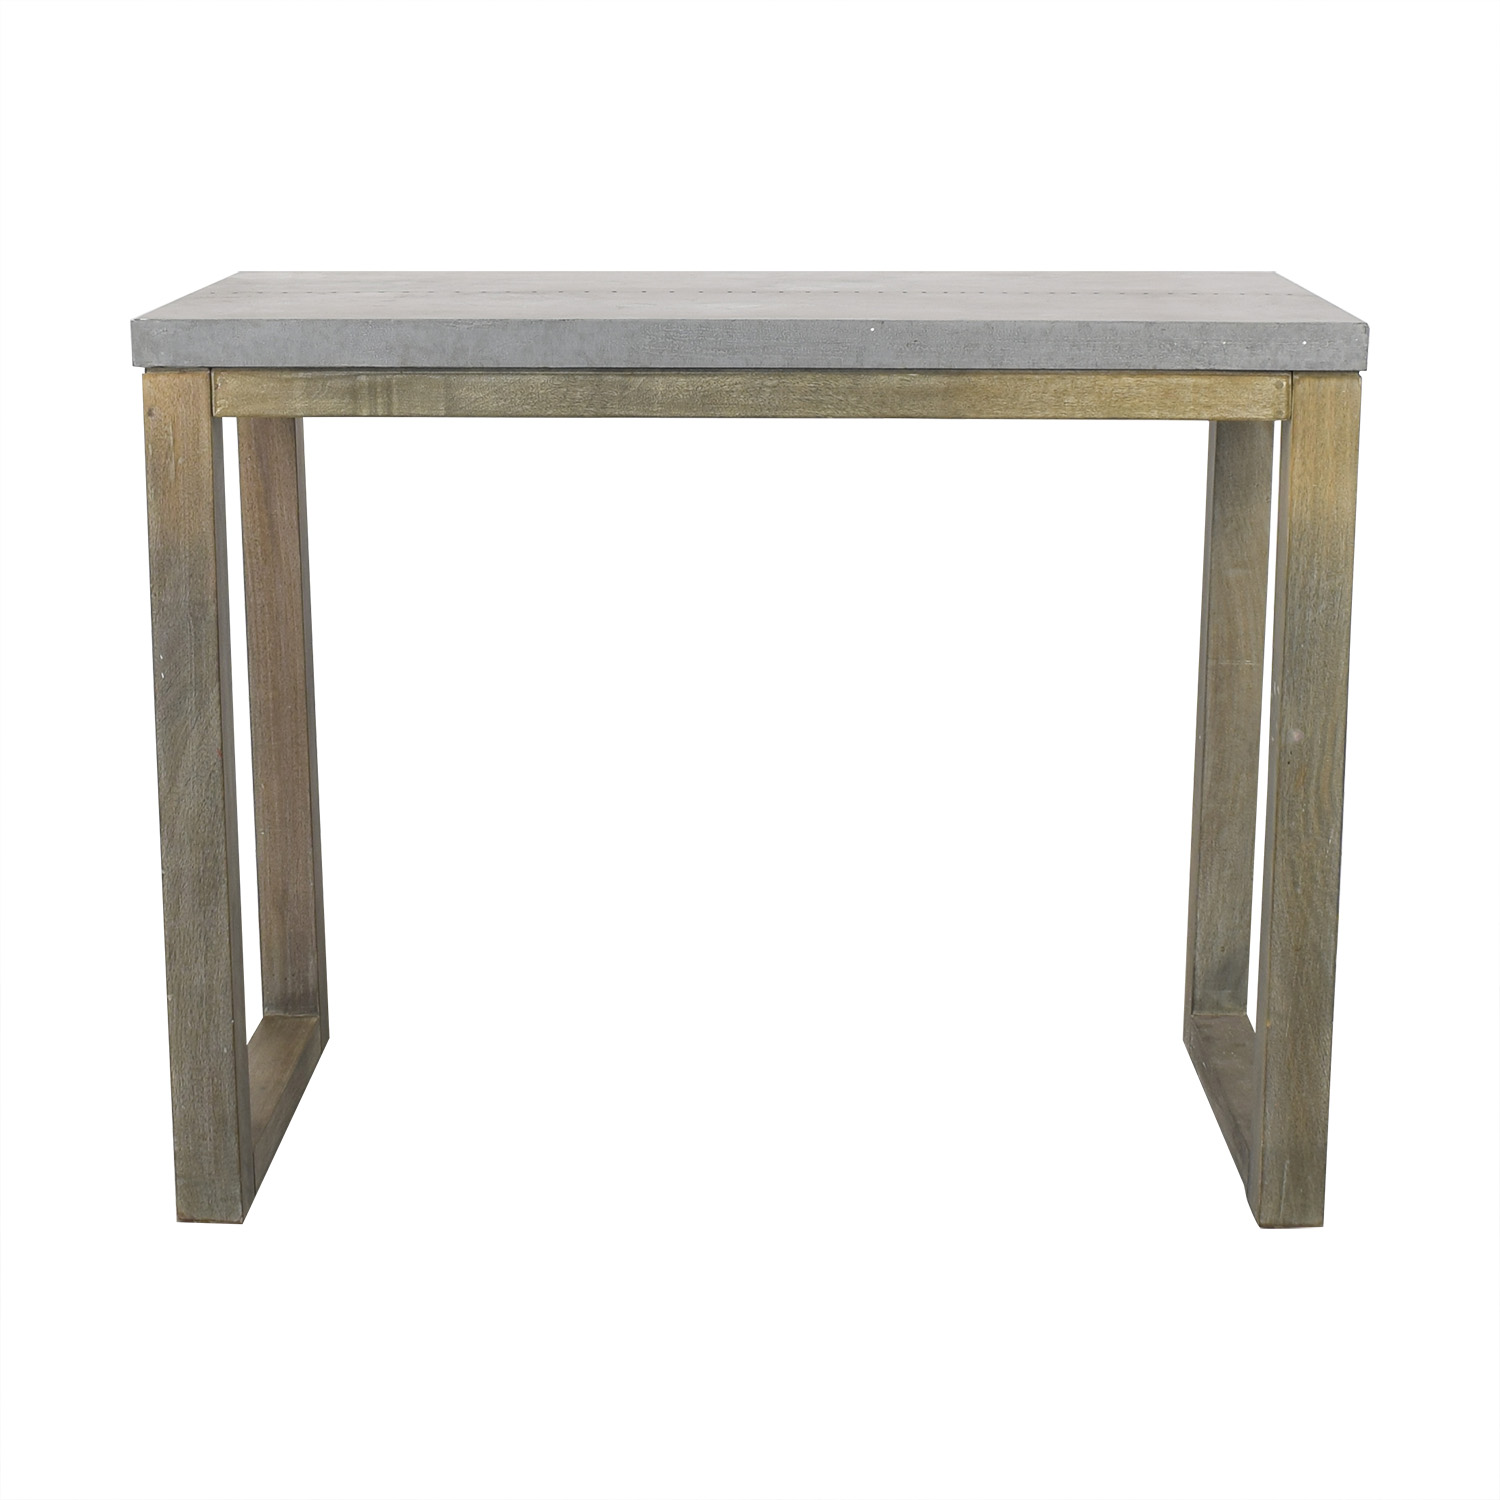 CB2 CB2 Stern Counter Table on sale